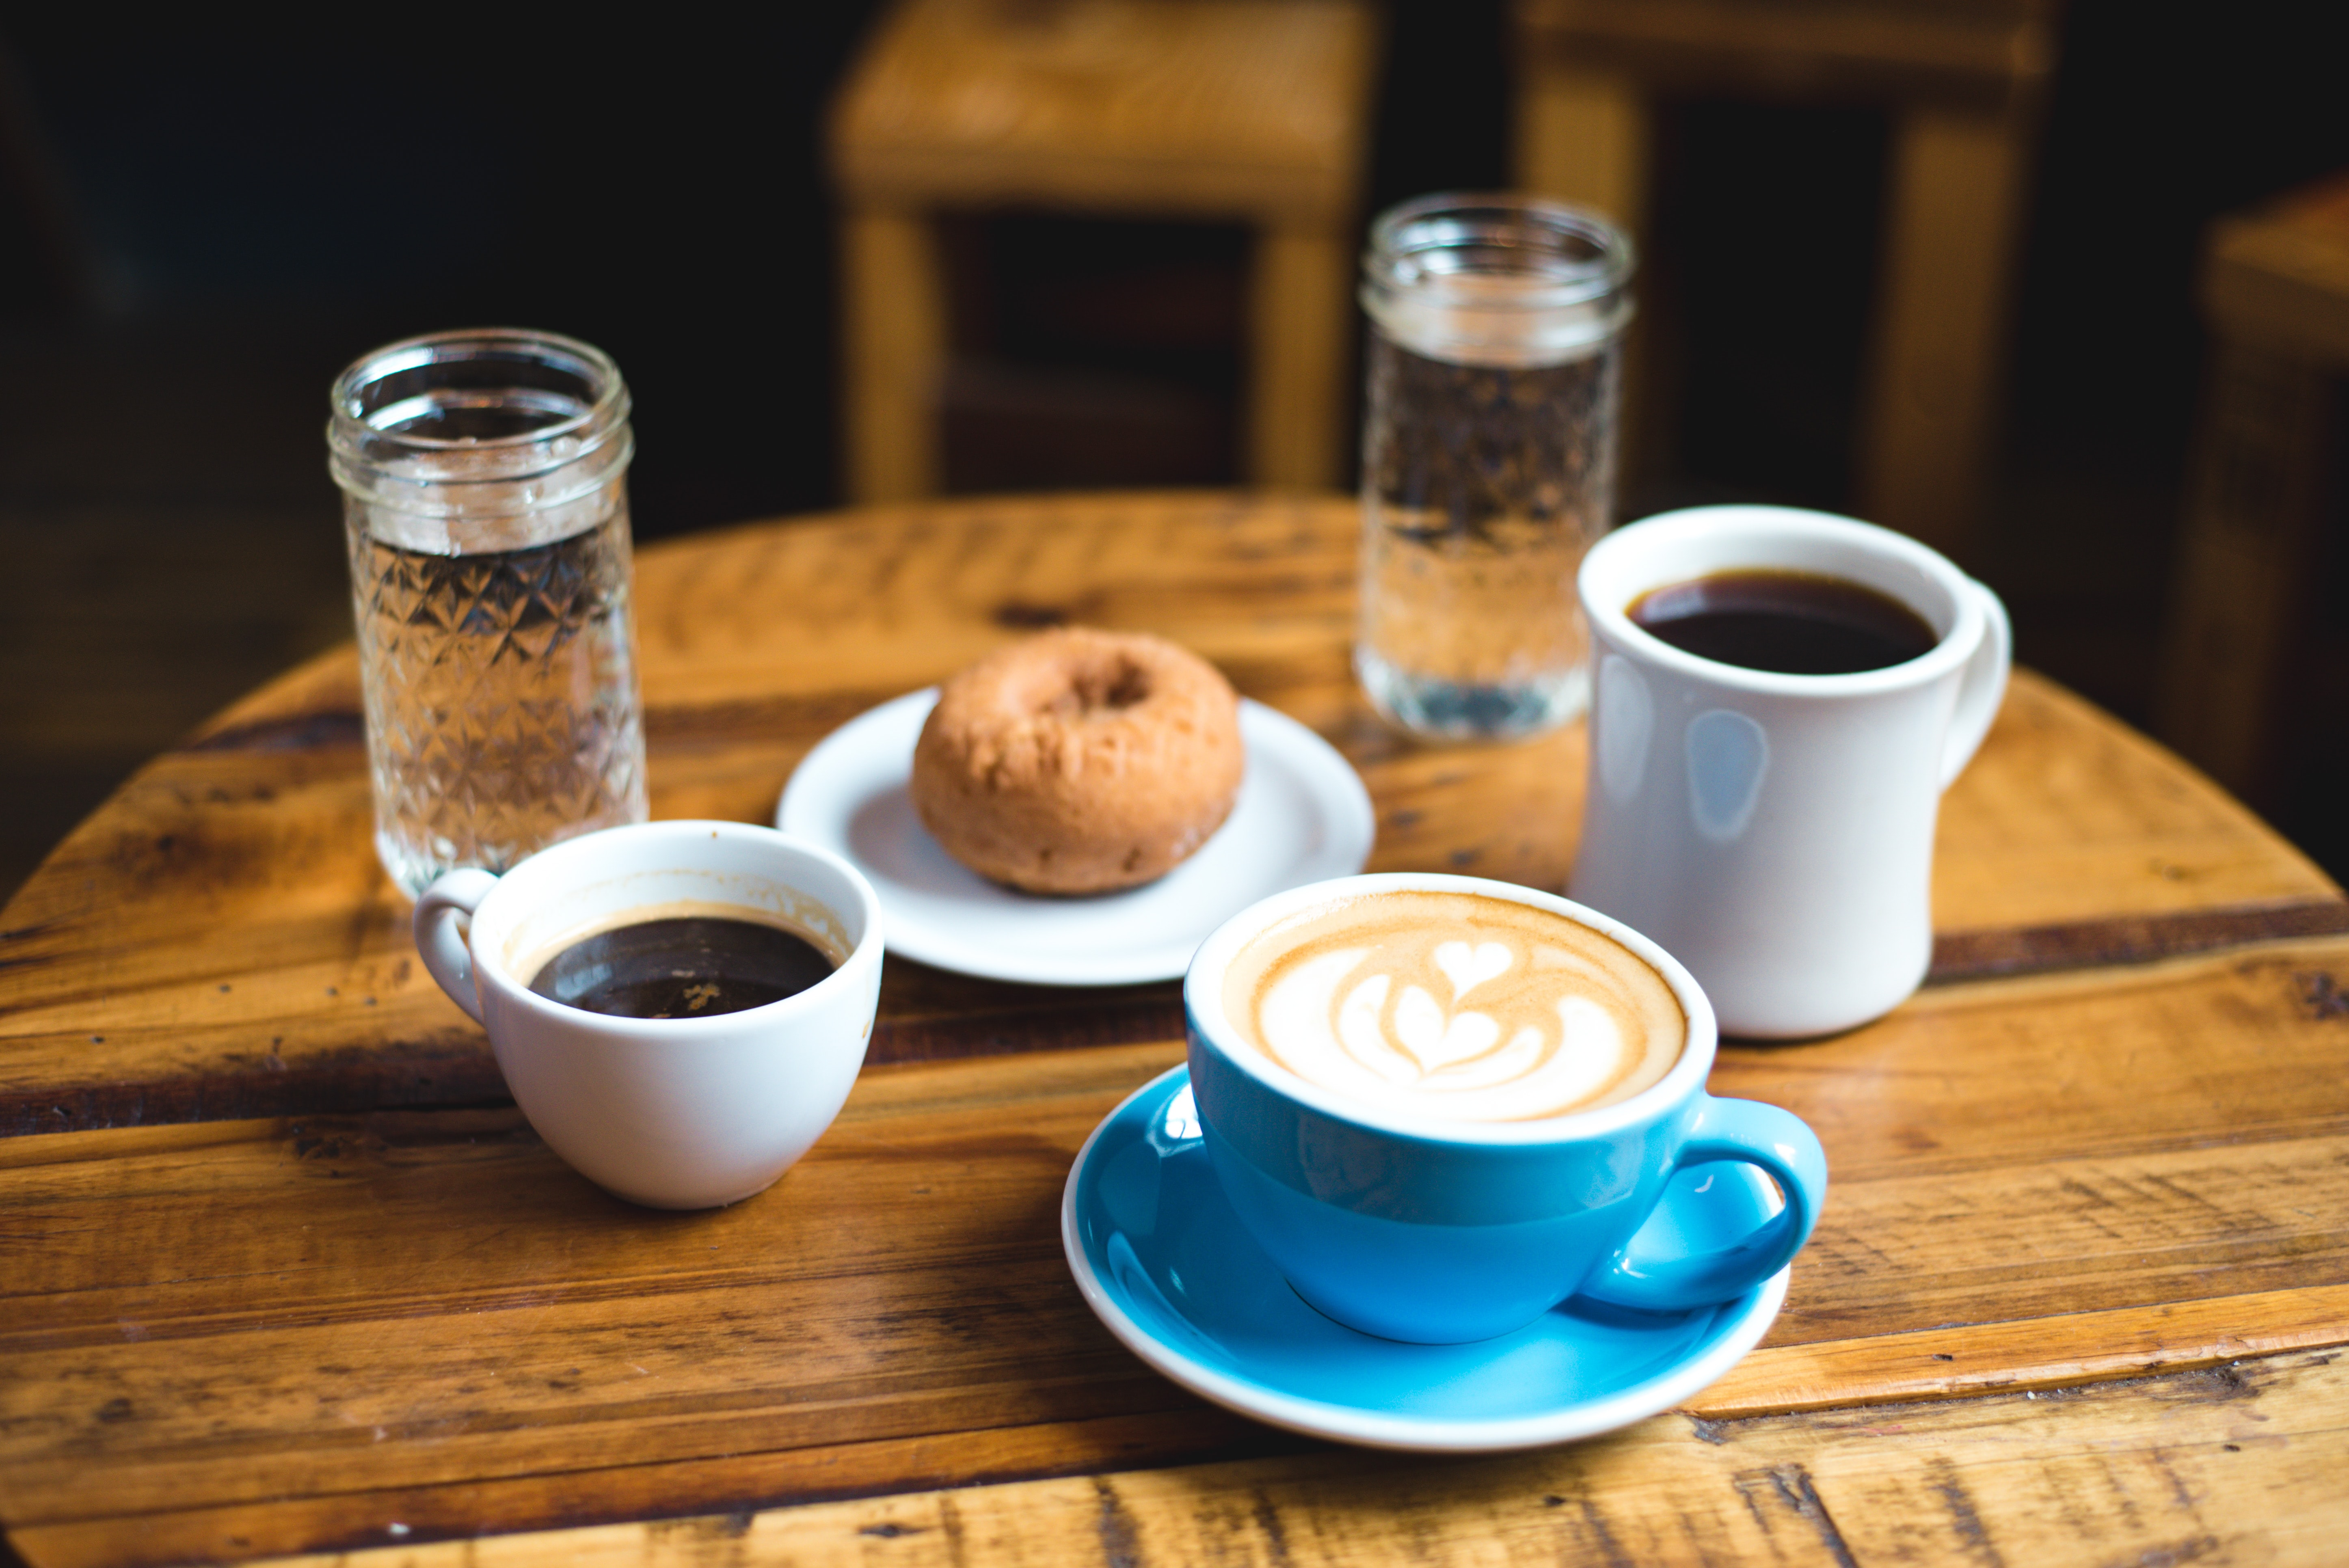 A round coffee table with two cups of black coffee, a latte with an artwork, a donut and water in glasses